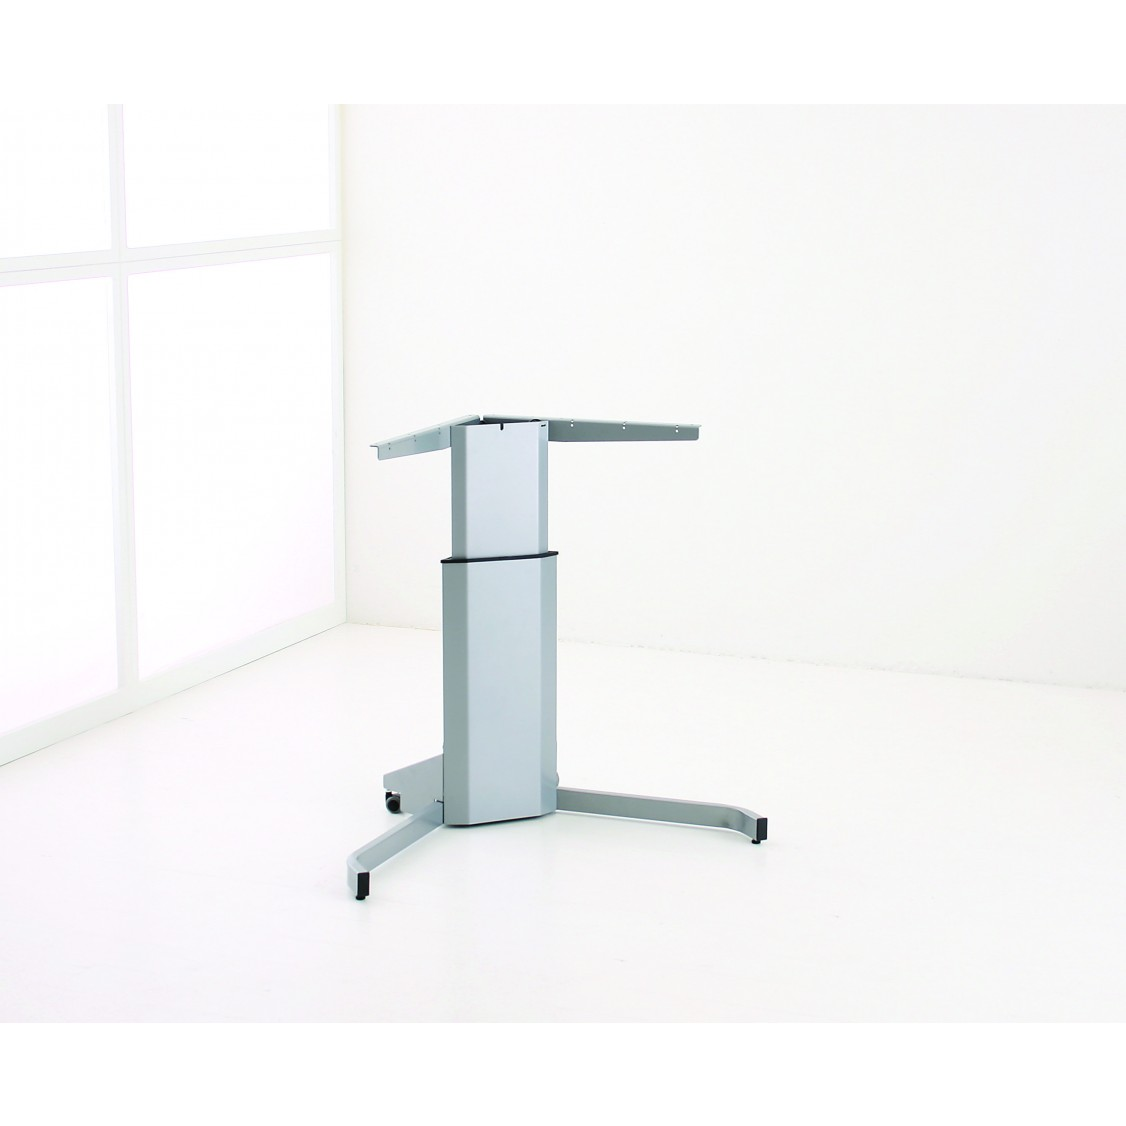 ... ad17 adjustable height desk ... AFDFQJH